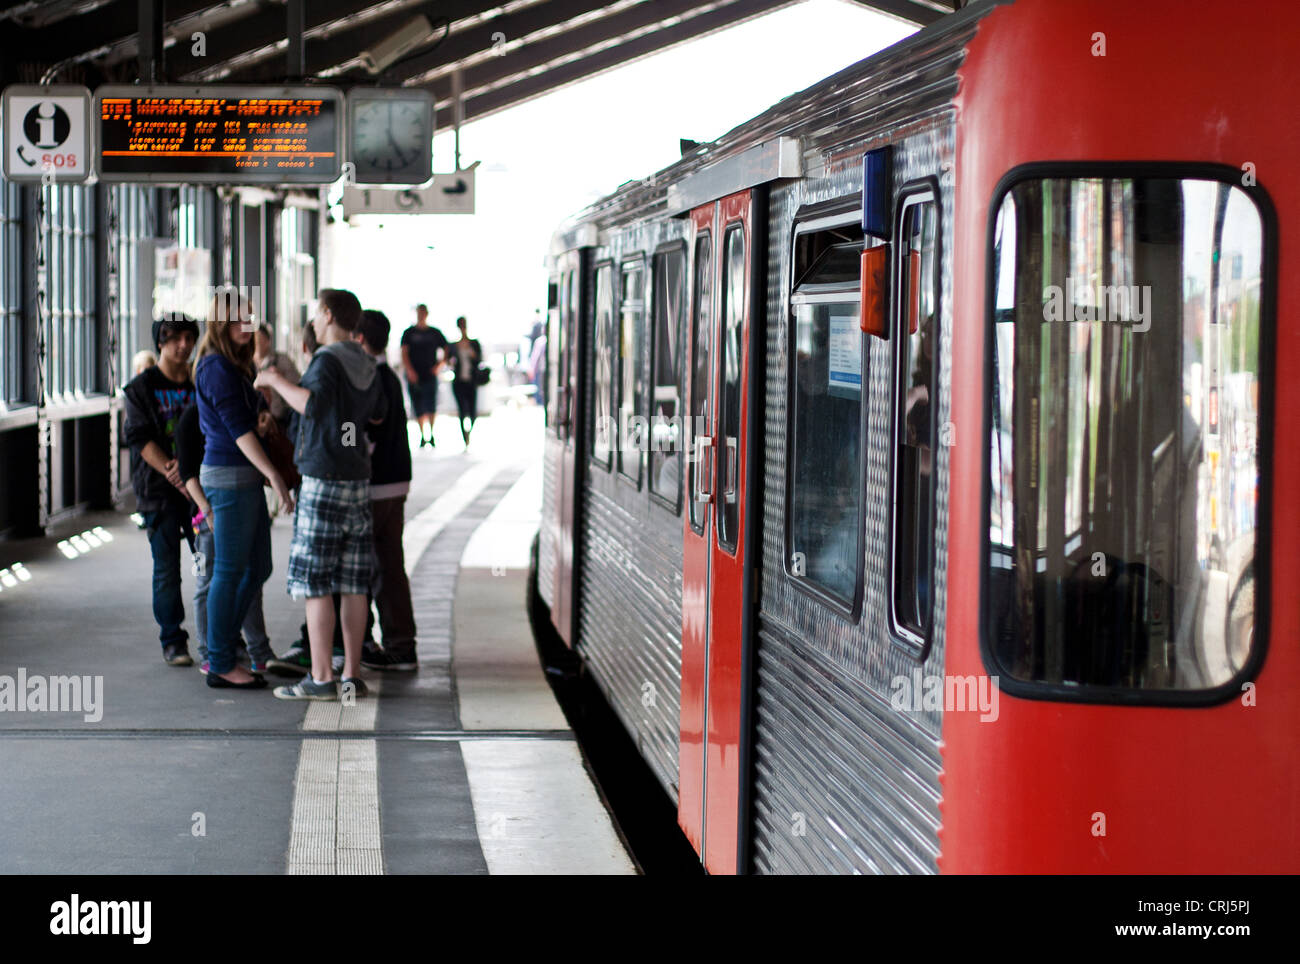 Group of young people waiting for tram at station Baumwall in Hamburg, Germany. Stock Photo